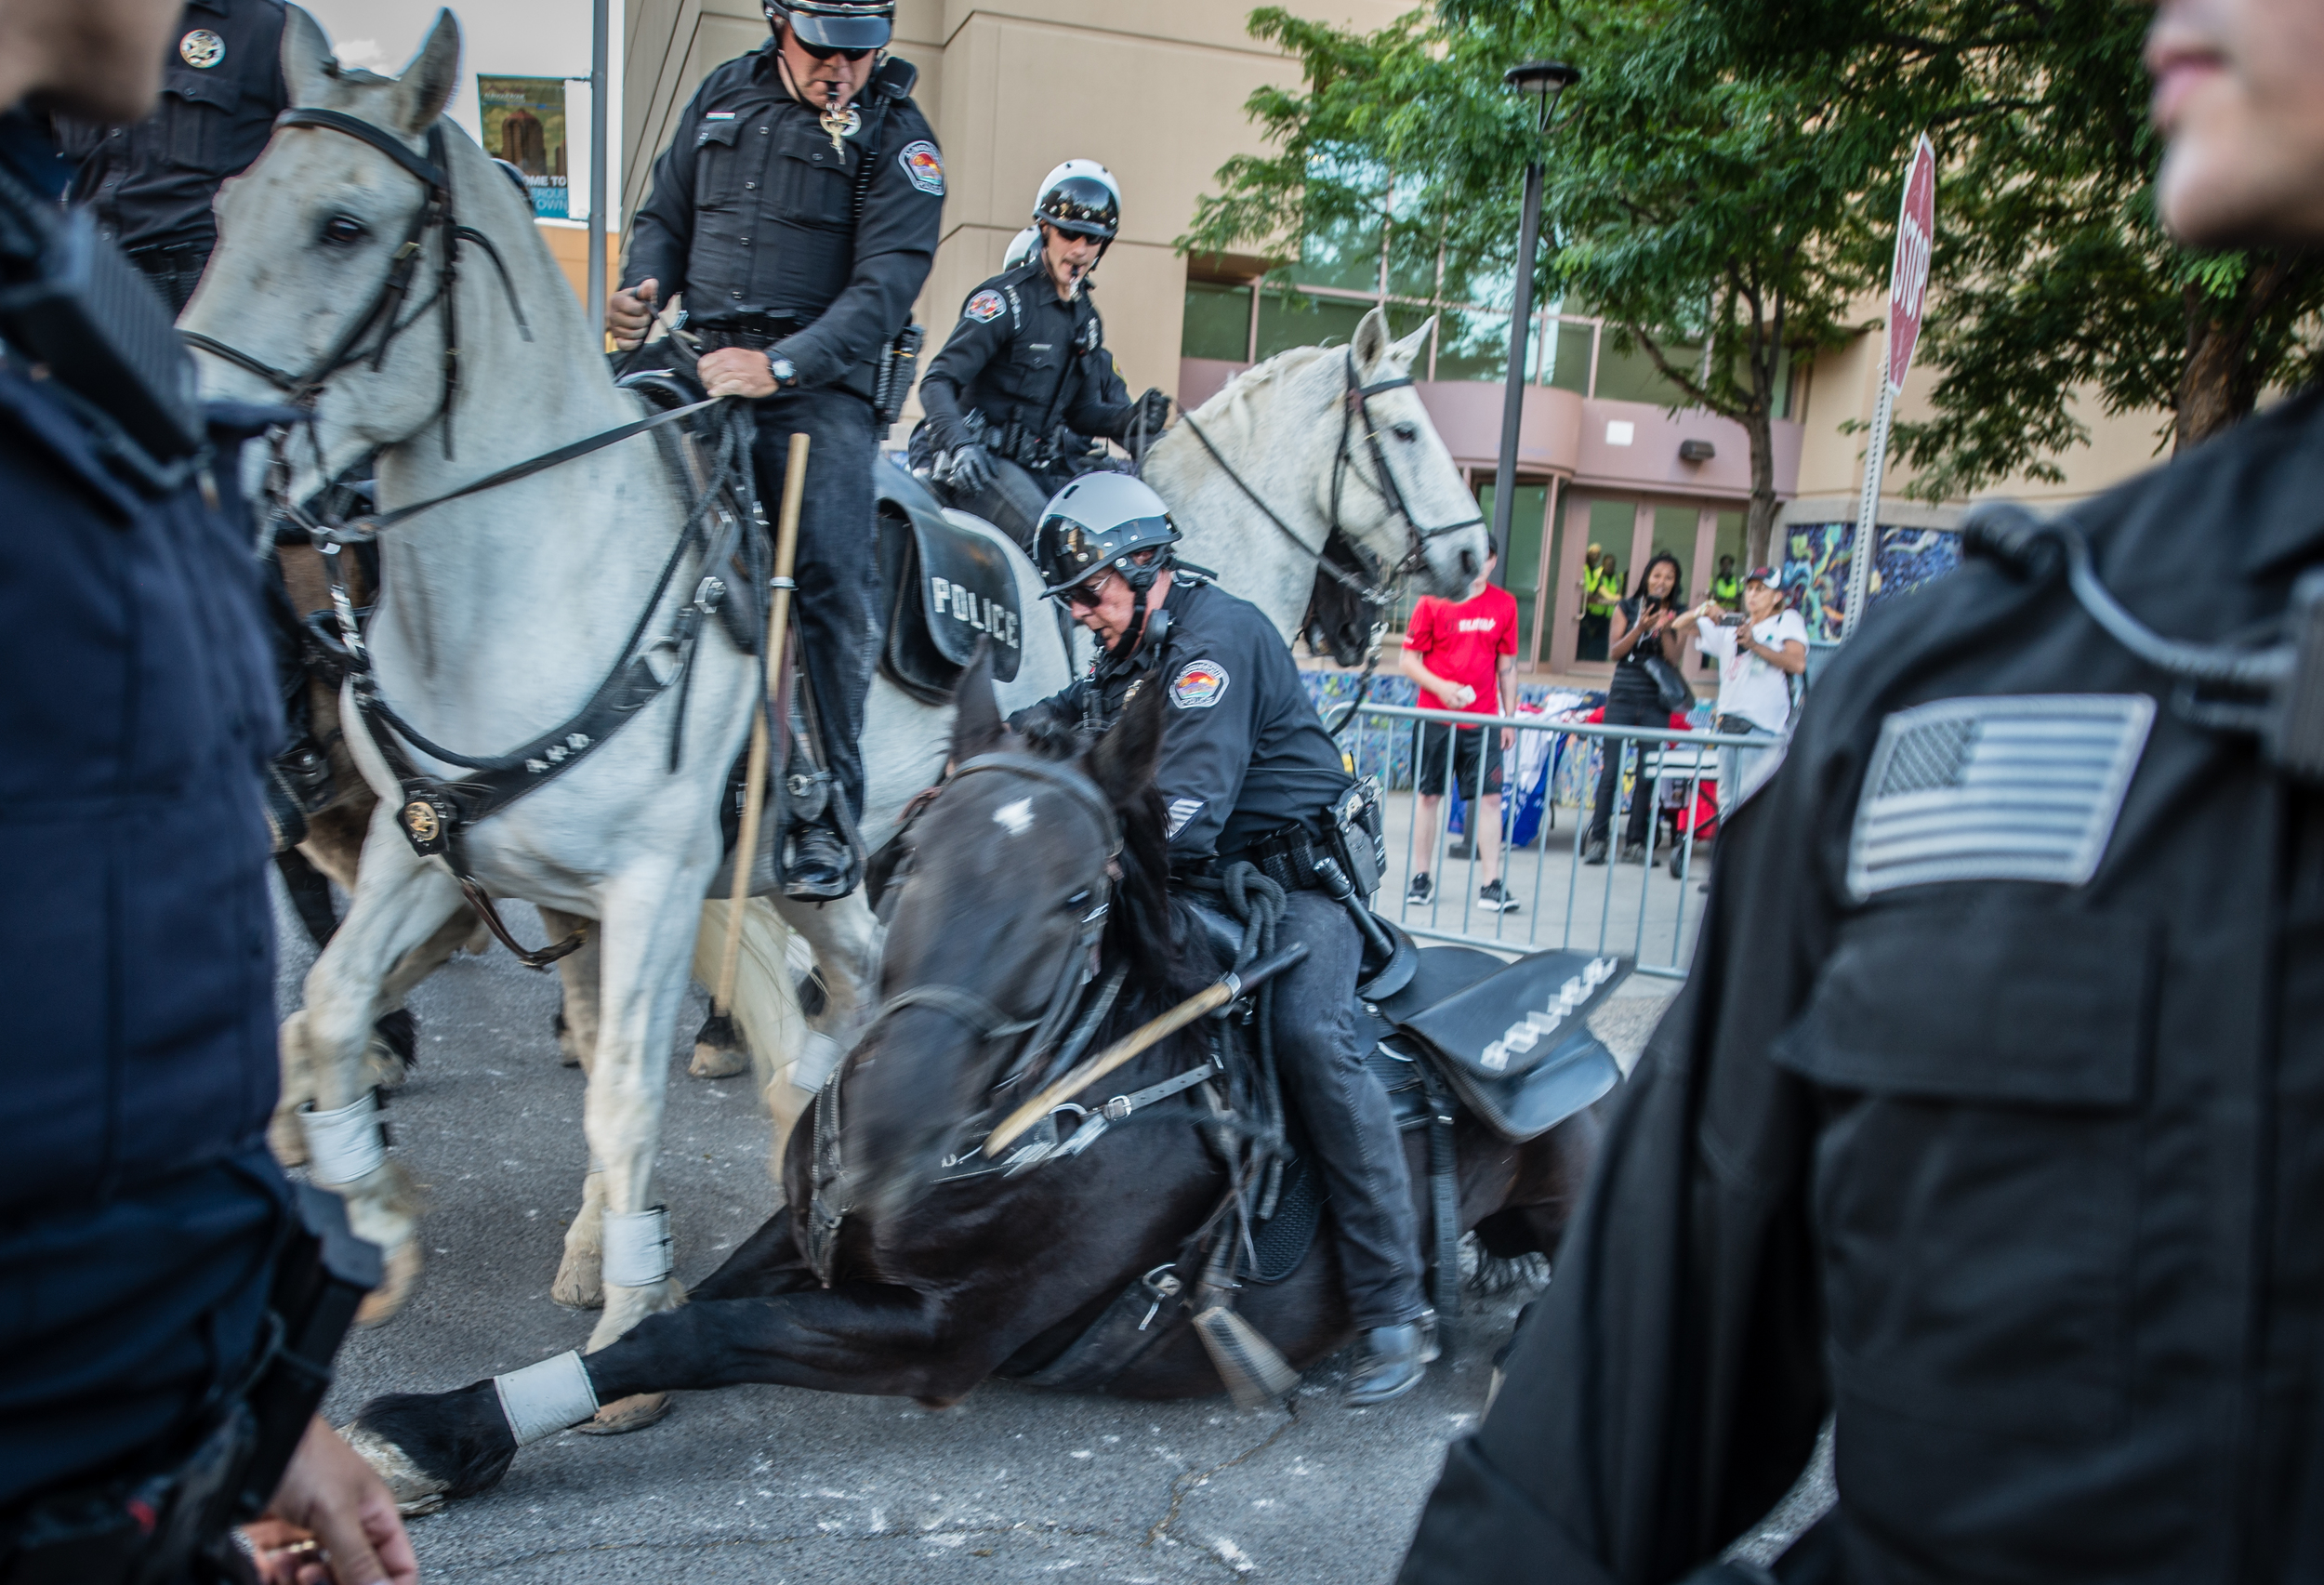 A mounted patrolman's horse takes a tumble when protesters breached a barricade during an anti Donald Trump rally demonstration in Albuquerque on May 24th, 2016.